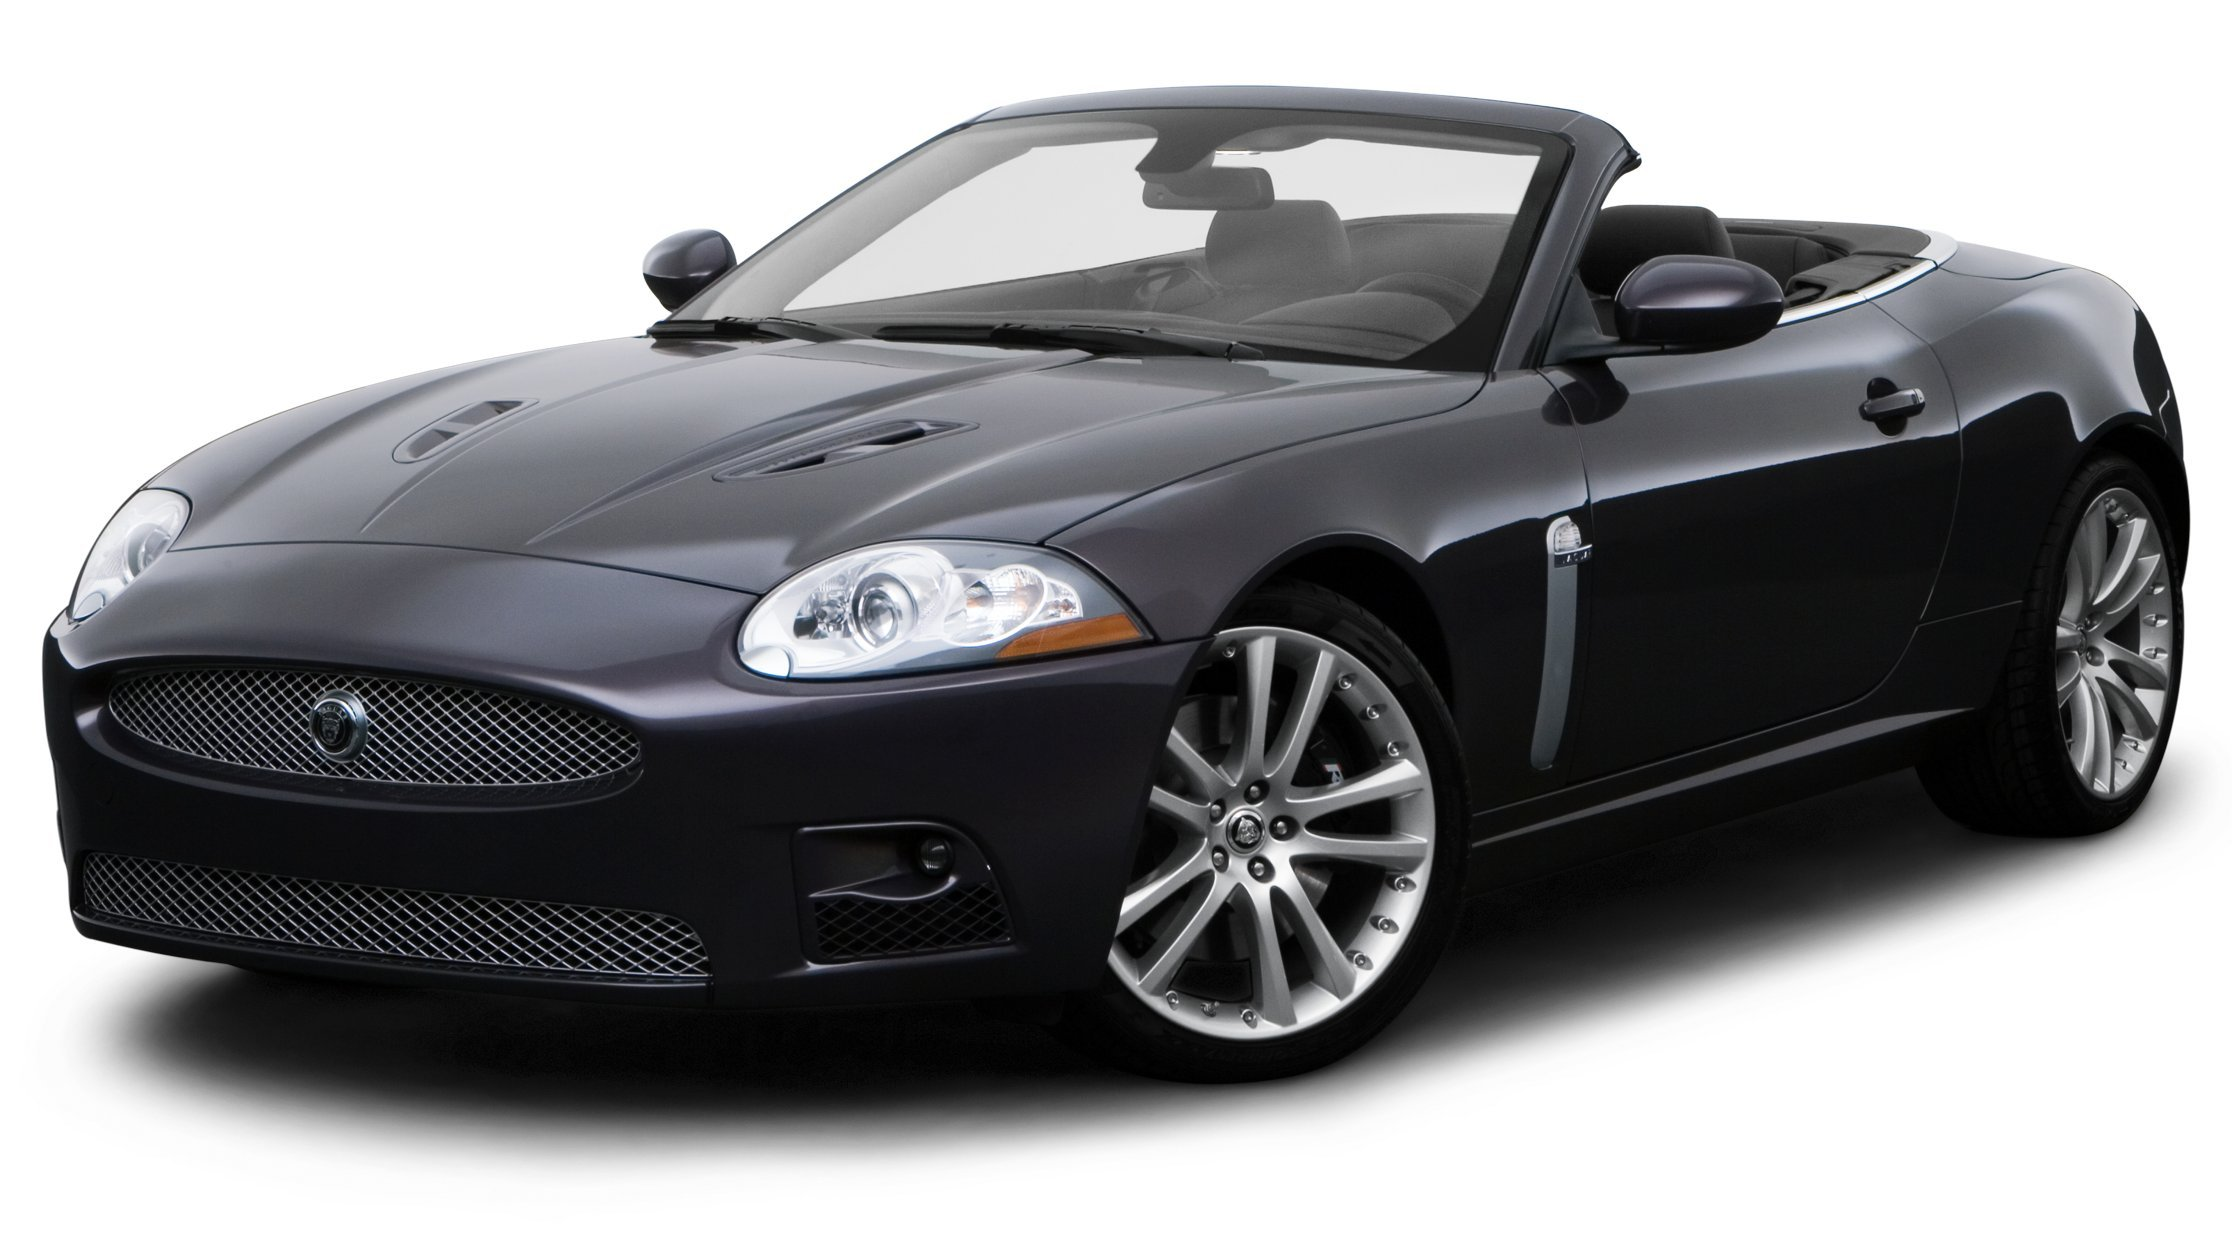 2008 Jaguar Xkr Reviews Images And Specs Vehicles Additional Wiring Diagram For The 1949 Chevrolet Passenger Cars Convertible 2 Door